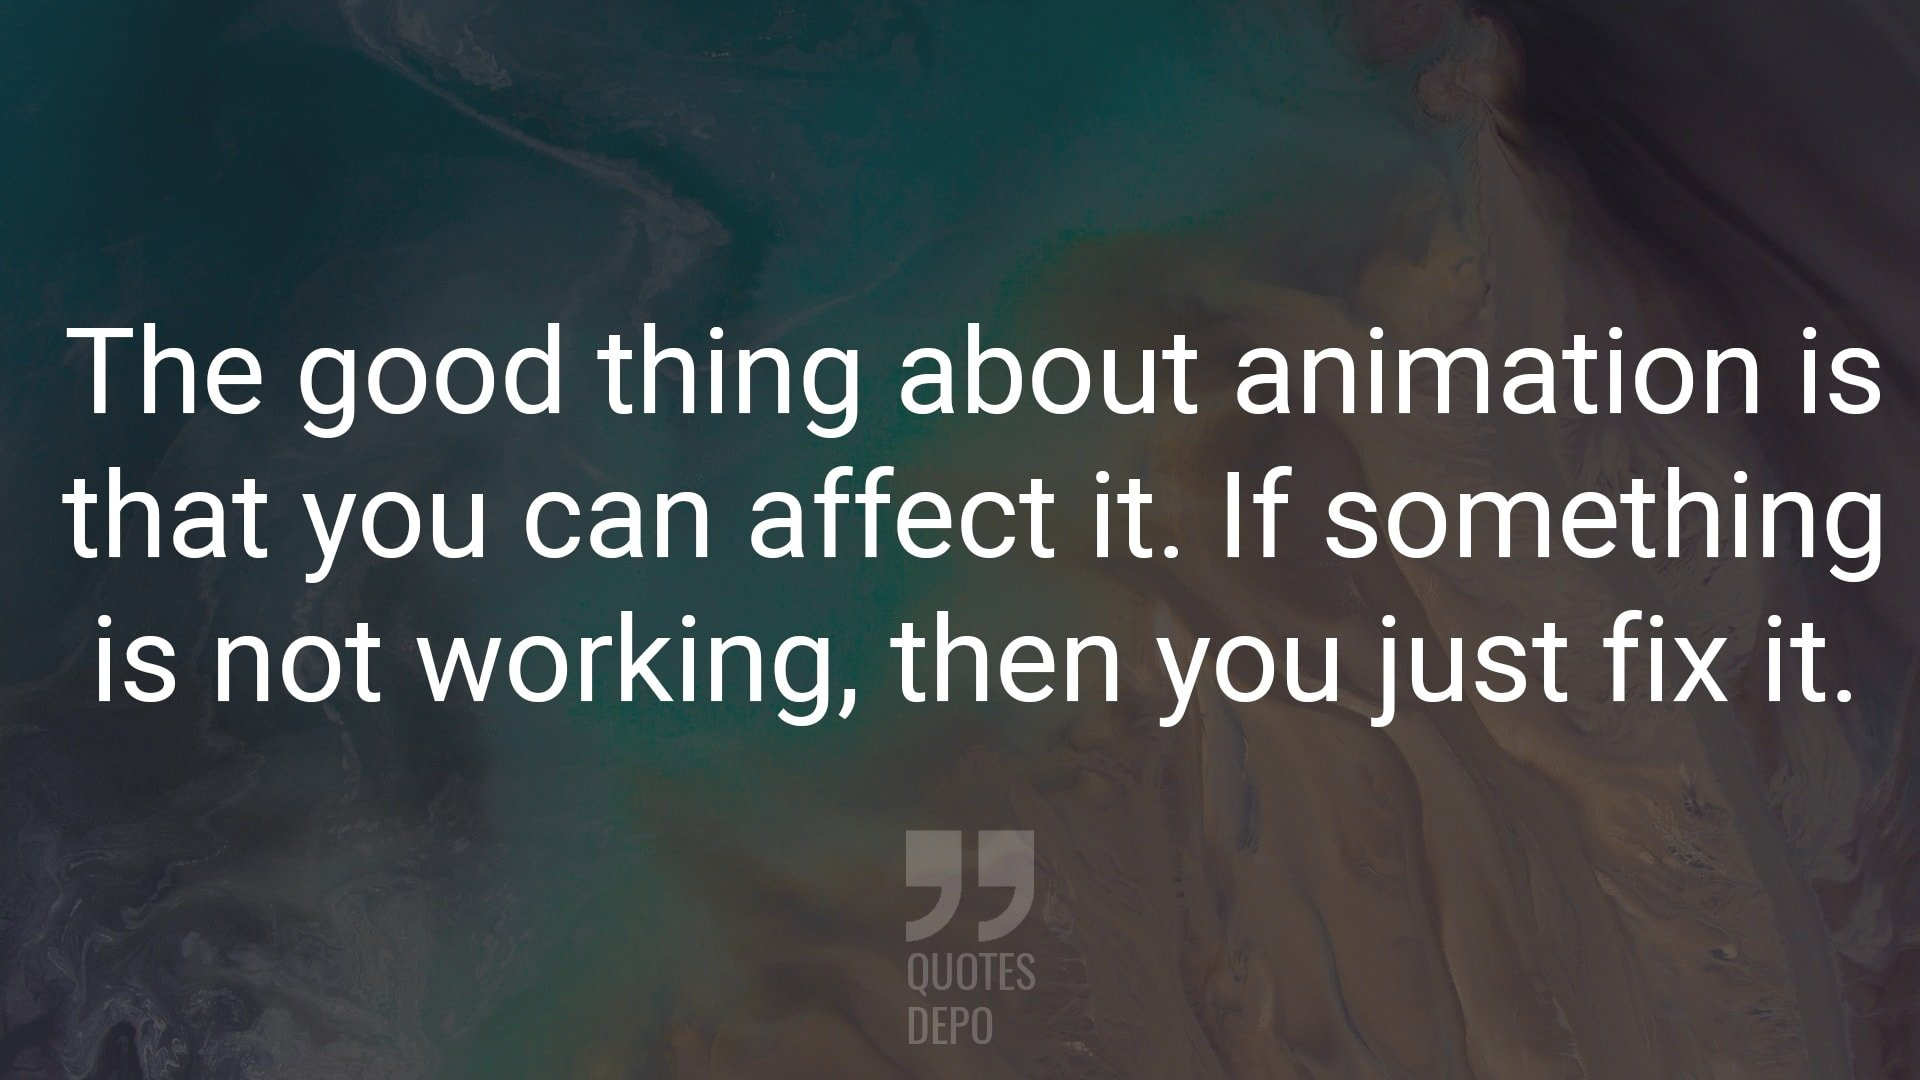 The Good Thing About Animation